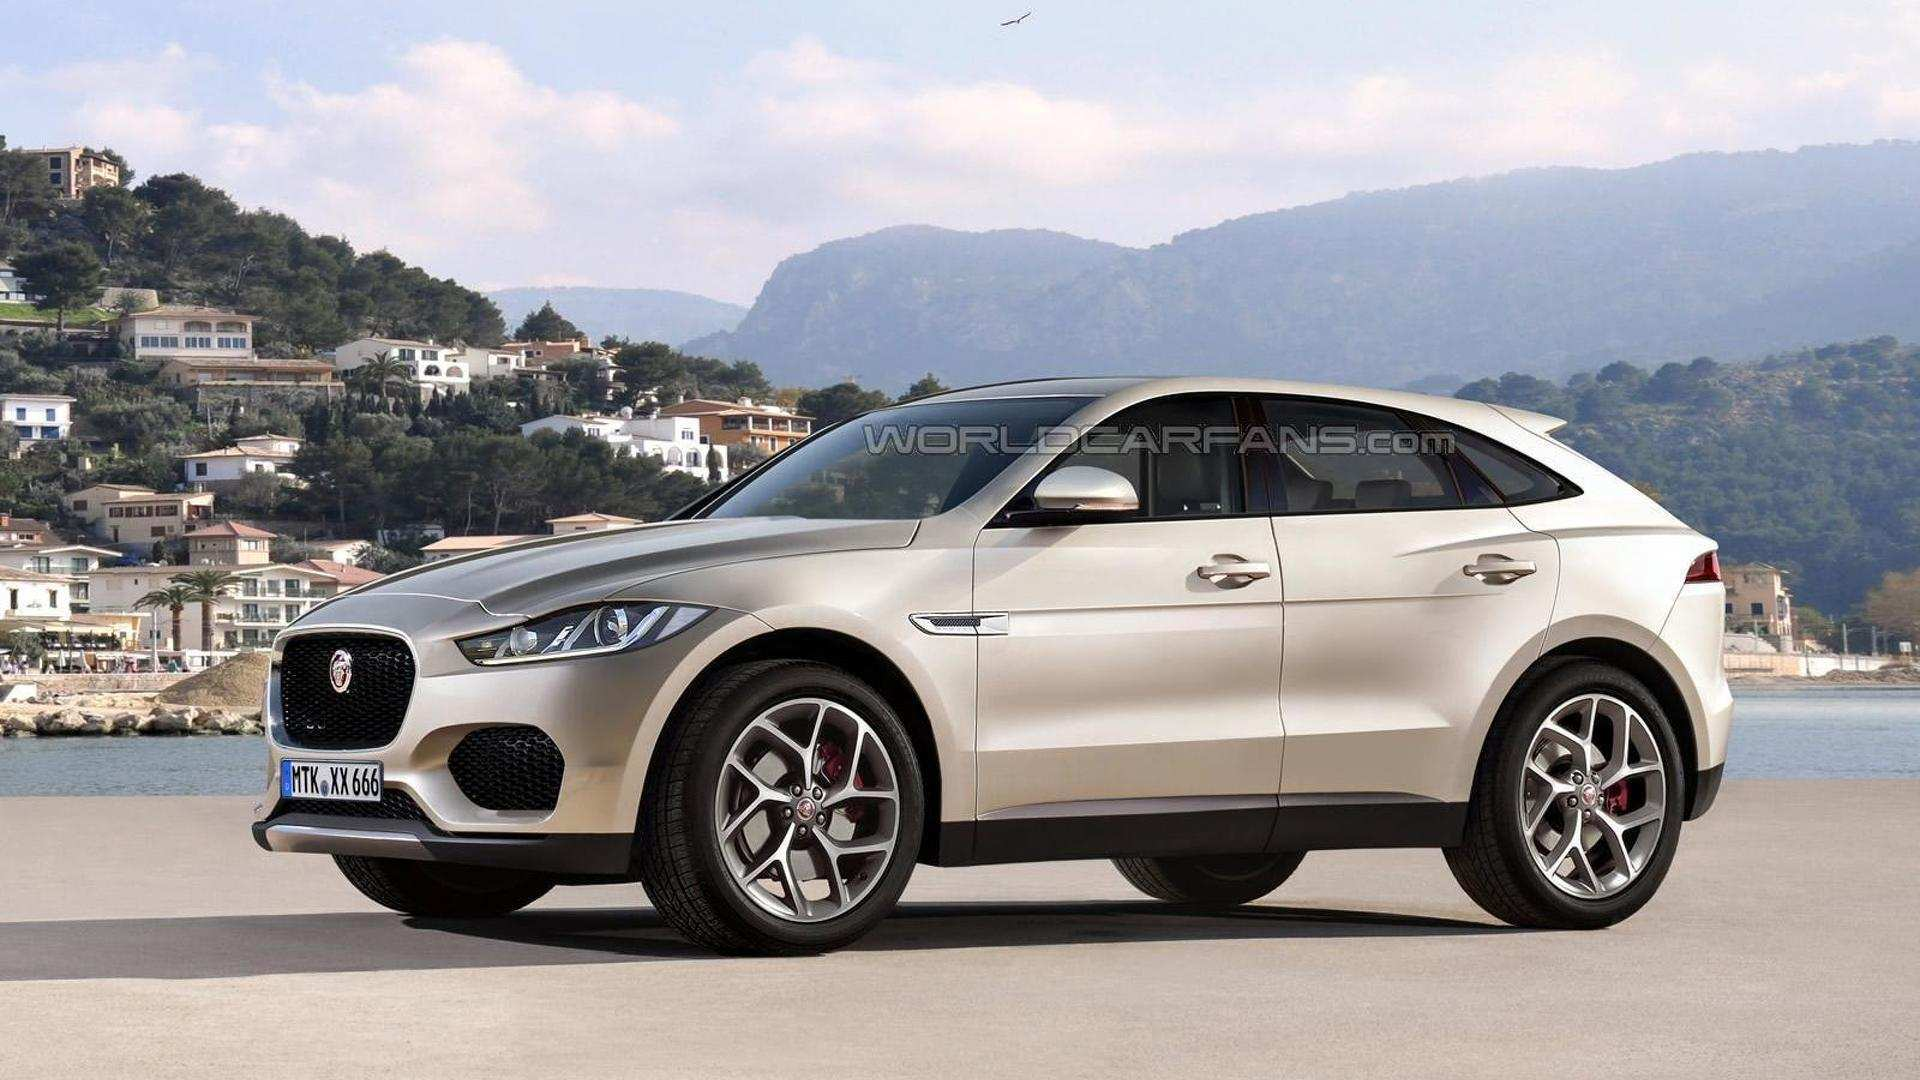 2020 Jaguar C X17 Crossover - Car Review : Car Review